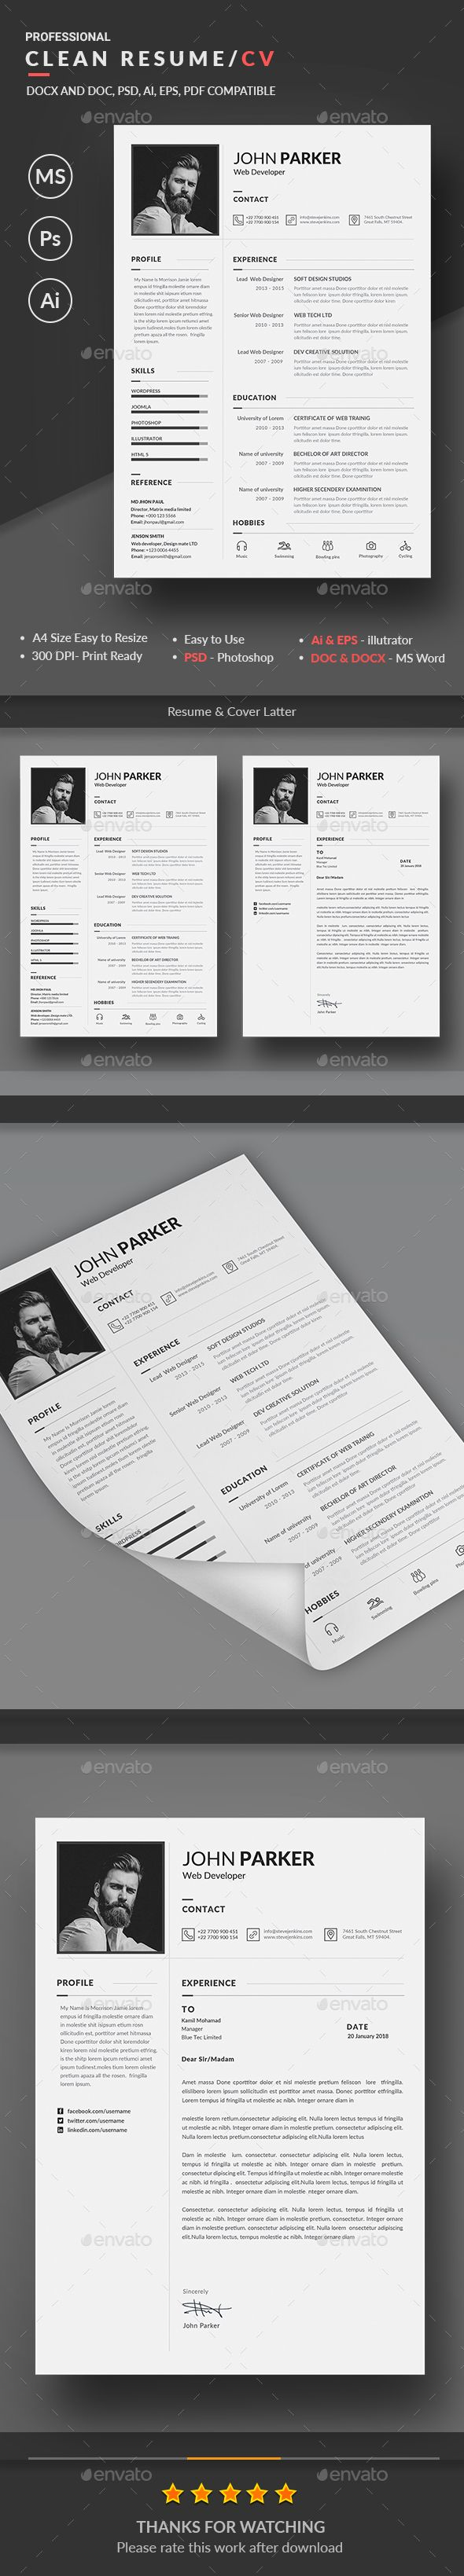 Resume - Resumes Stationery | Resume | Pinterest | Modelo